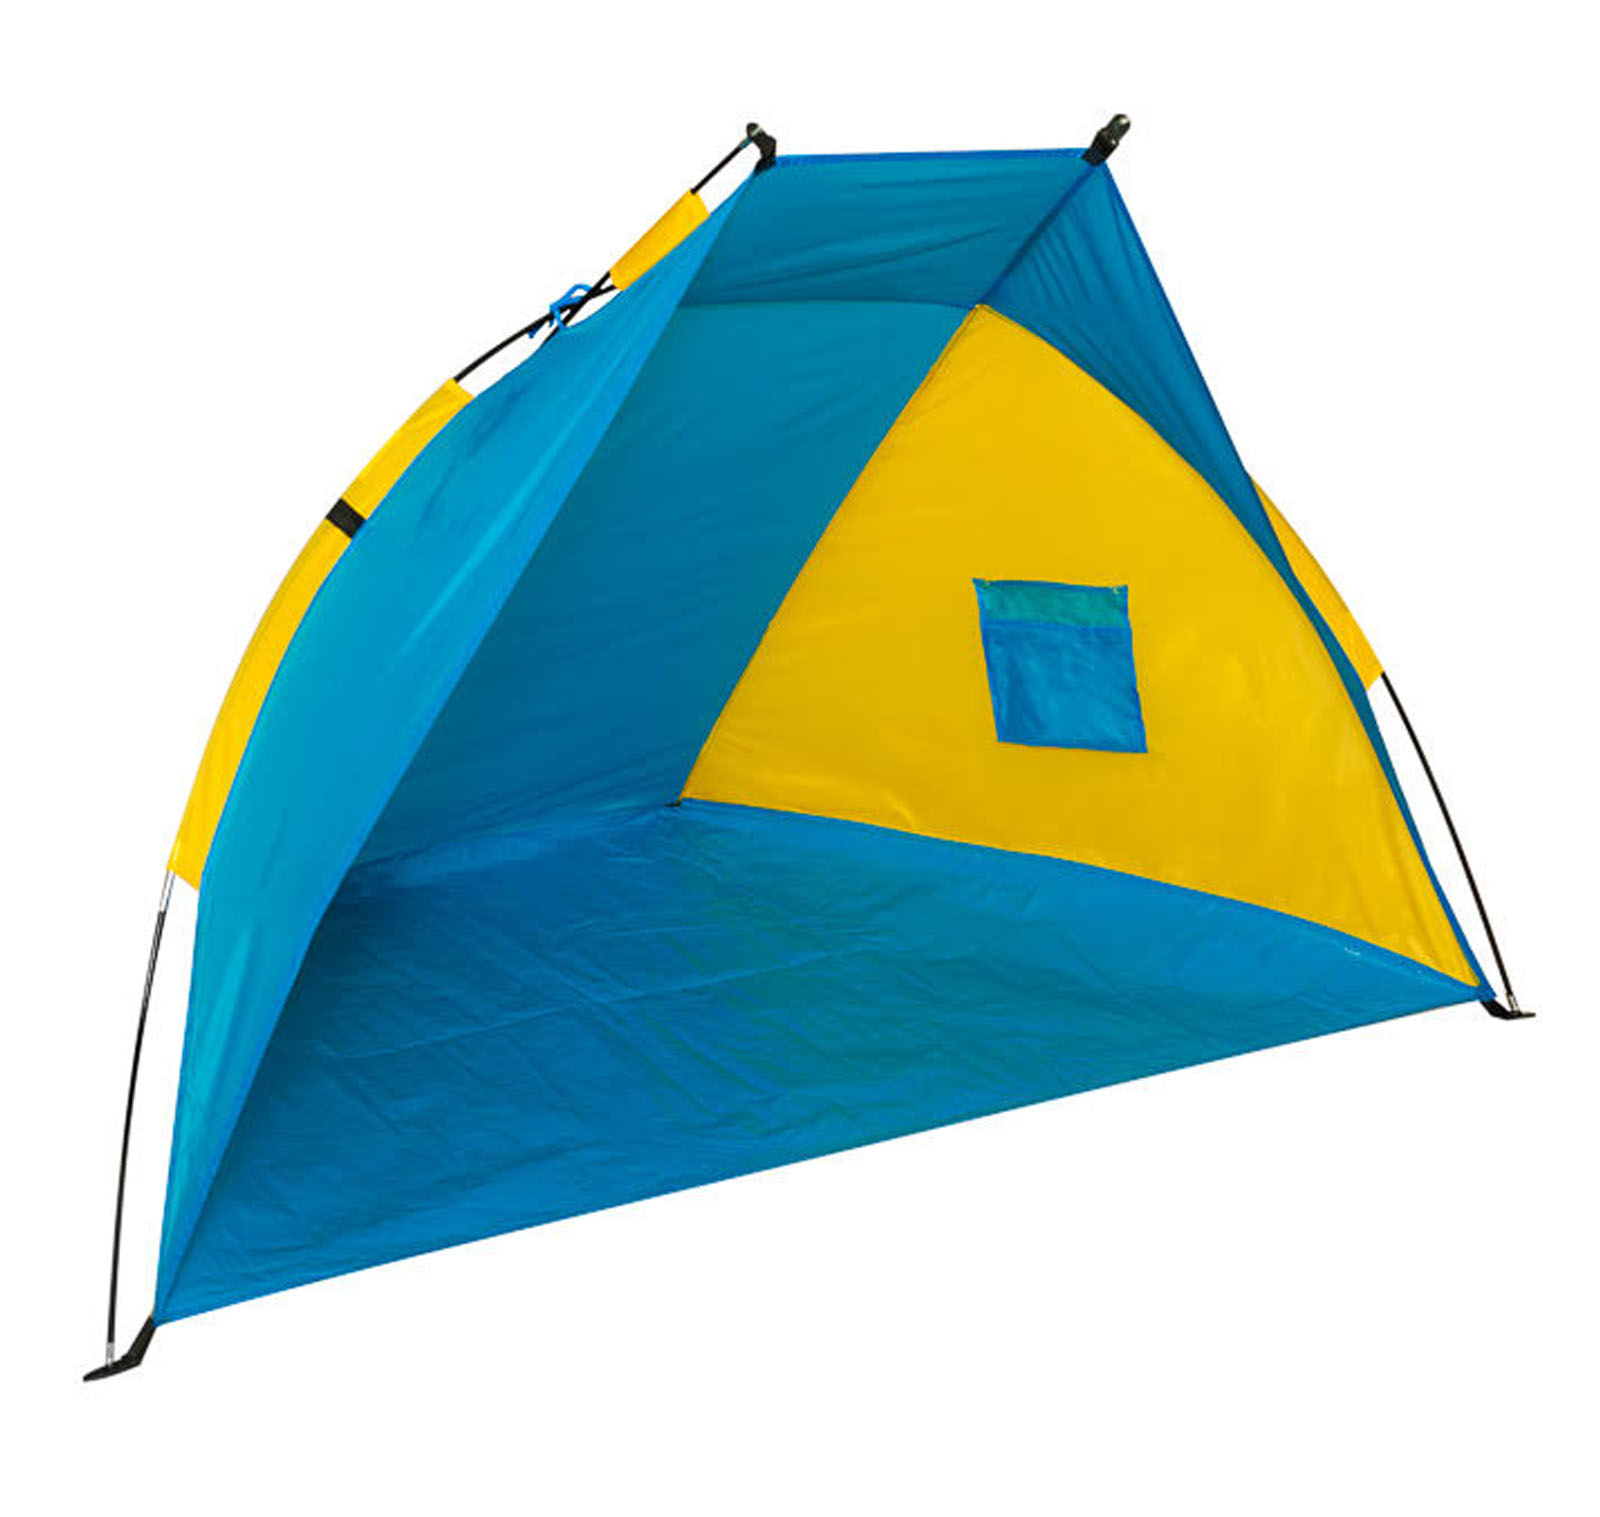 Pop Up Tent Shelters : Beach shelter pop up canopy tent uv sun camping